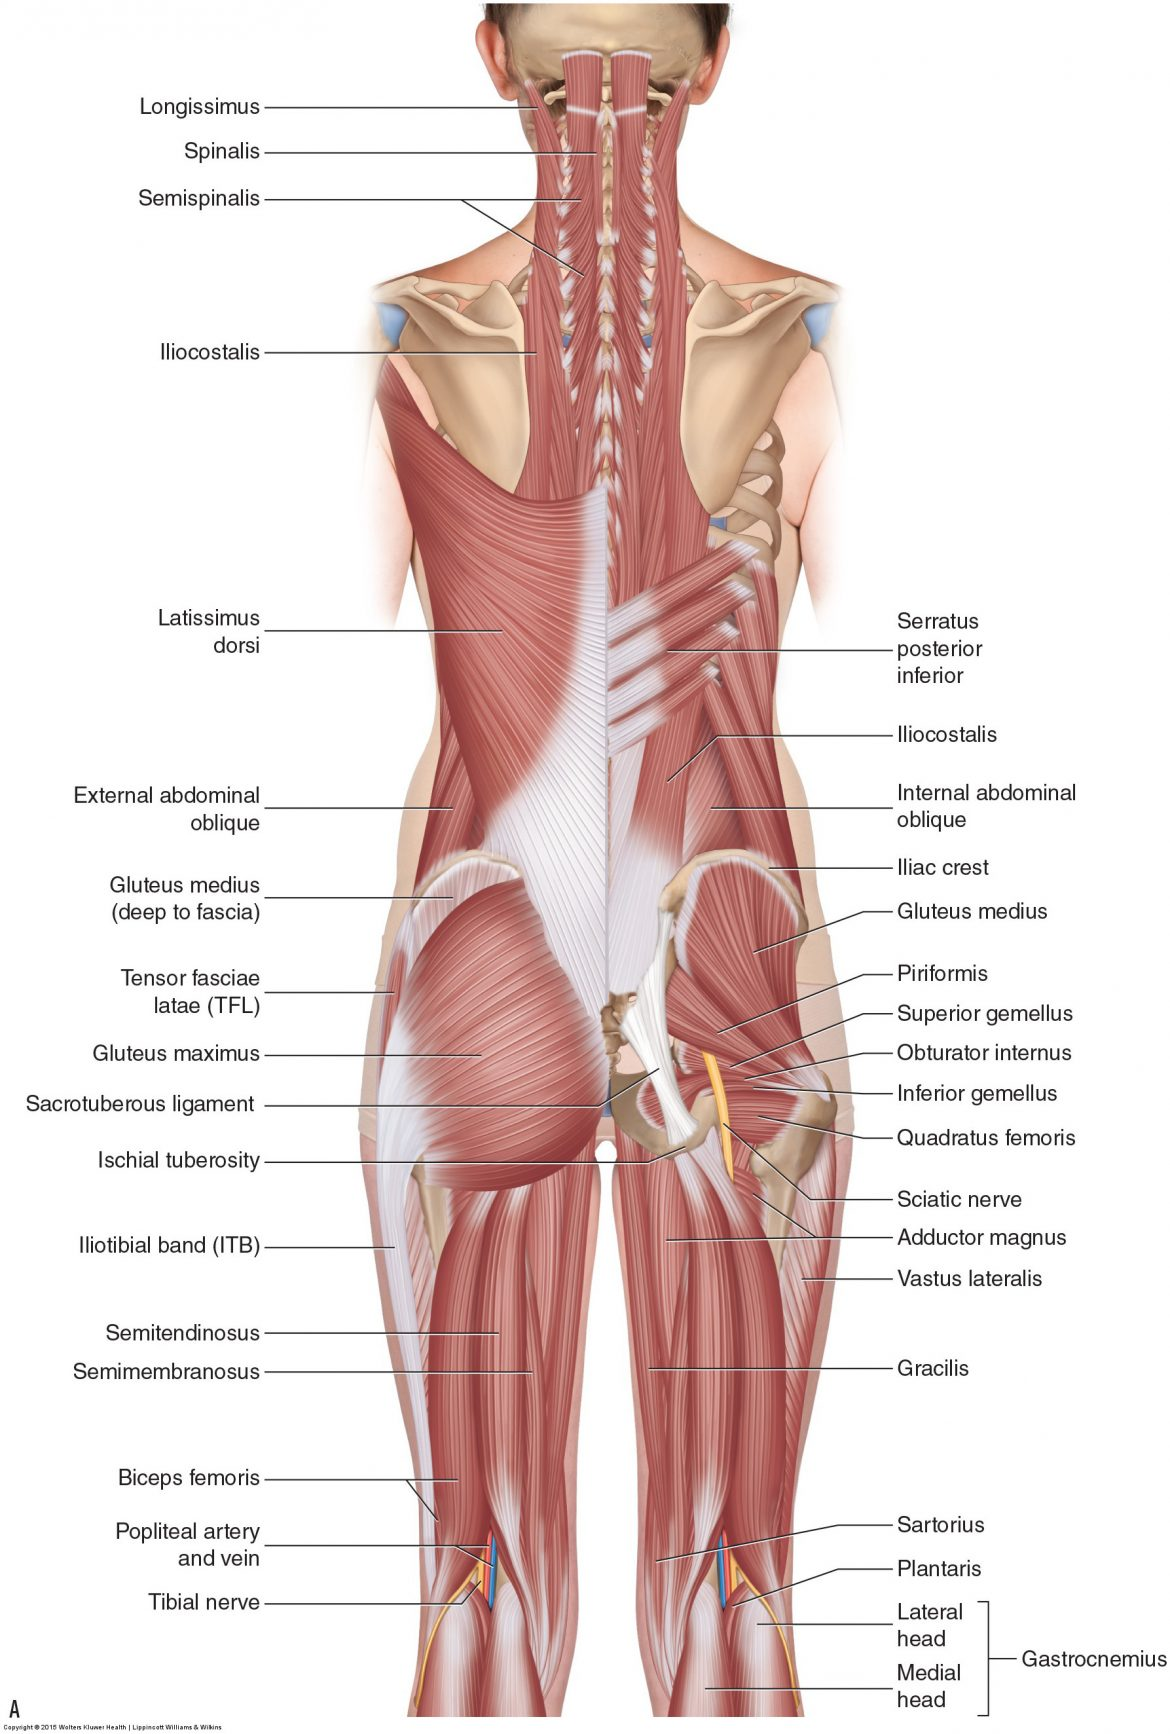 A hamstring strain is tearing of the hamstring musculature. Superficial posterior view of the muscle of the thigh